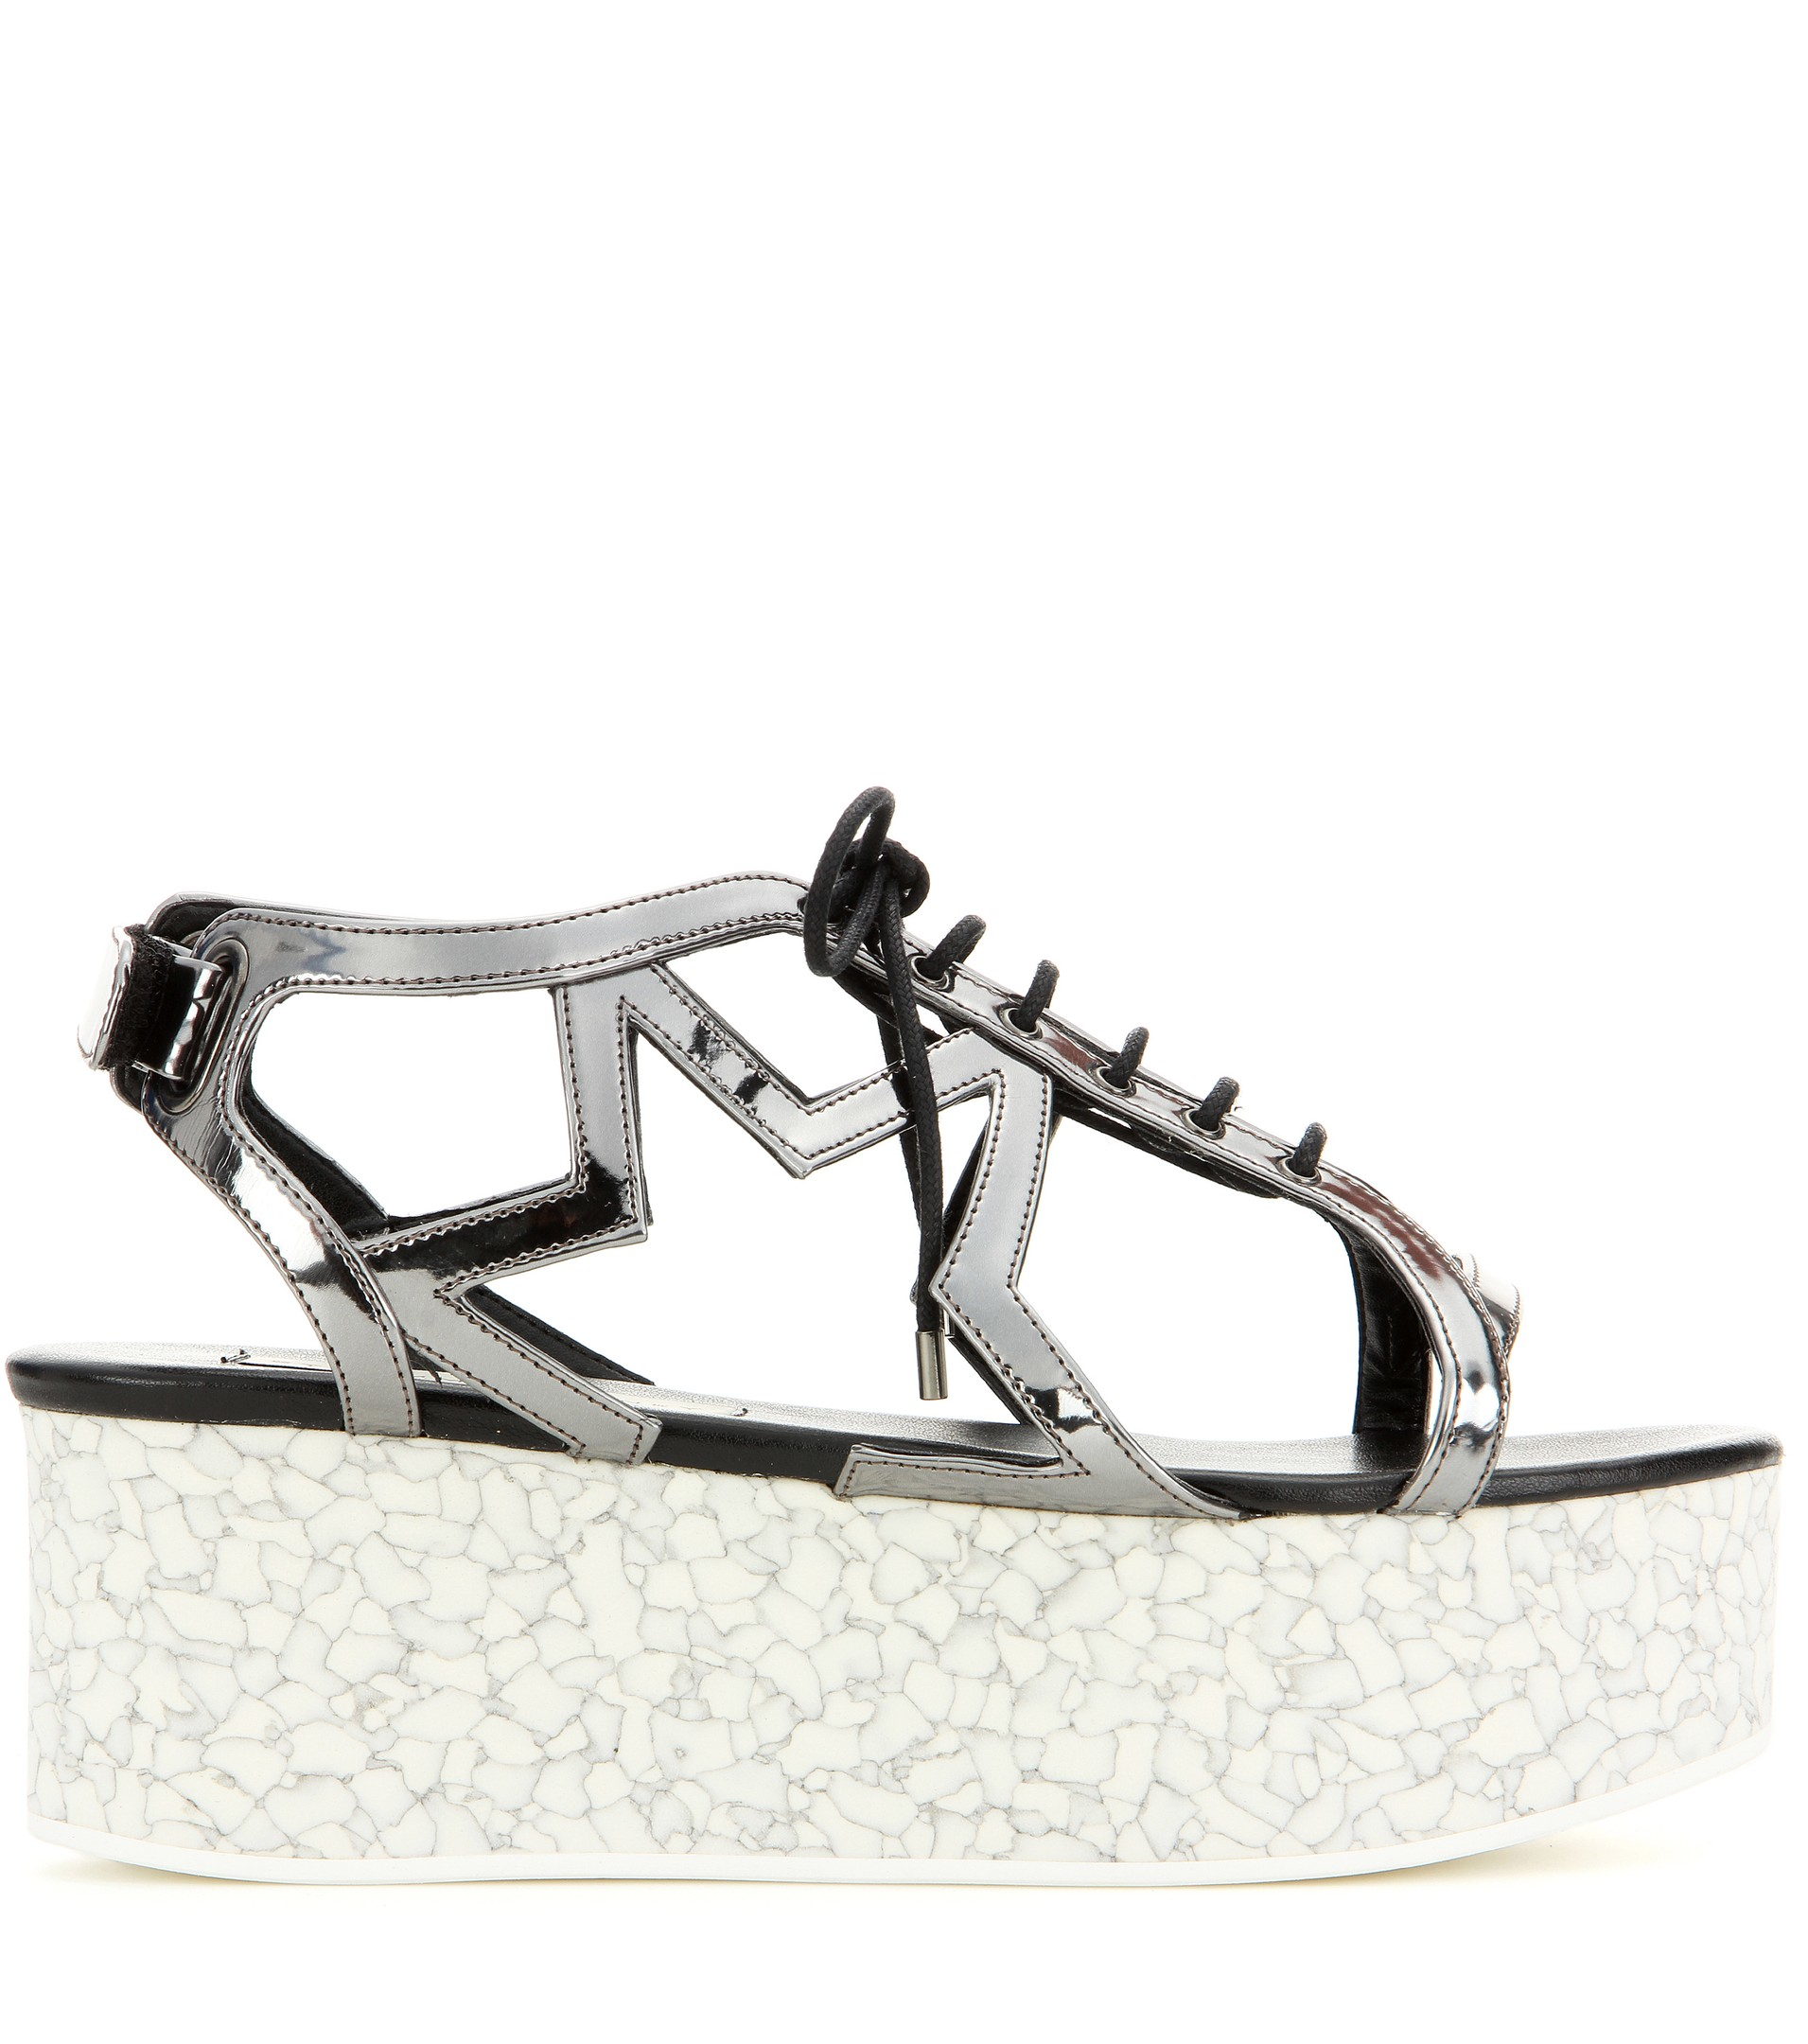 6c11892ee503 Lyst - Stella McCartney Metallic Faux Leather Platform Sandals in ...